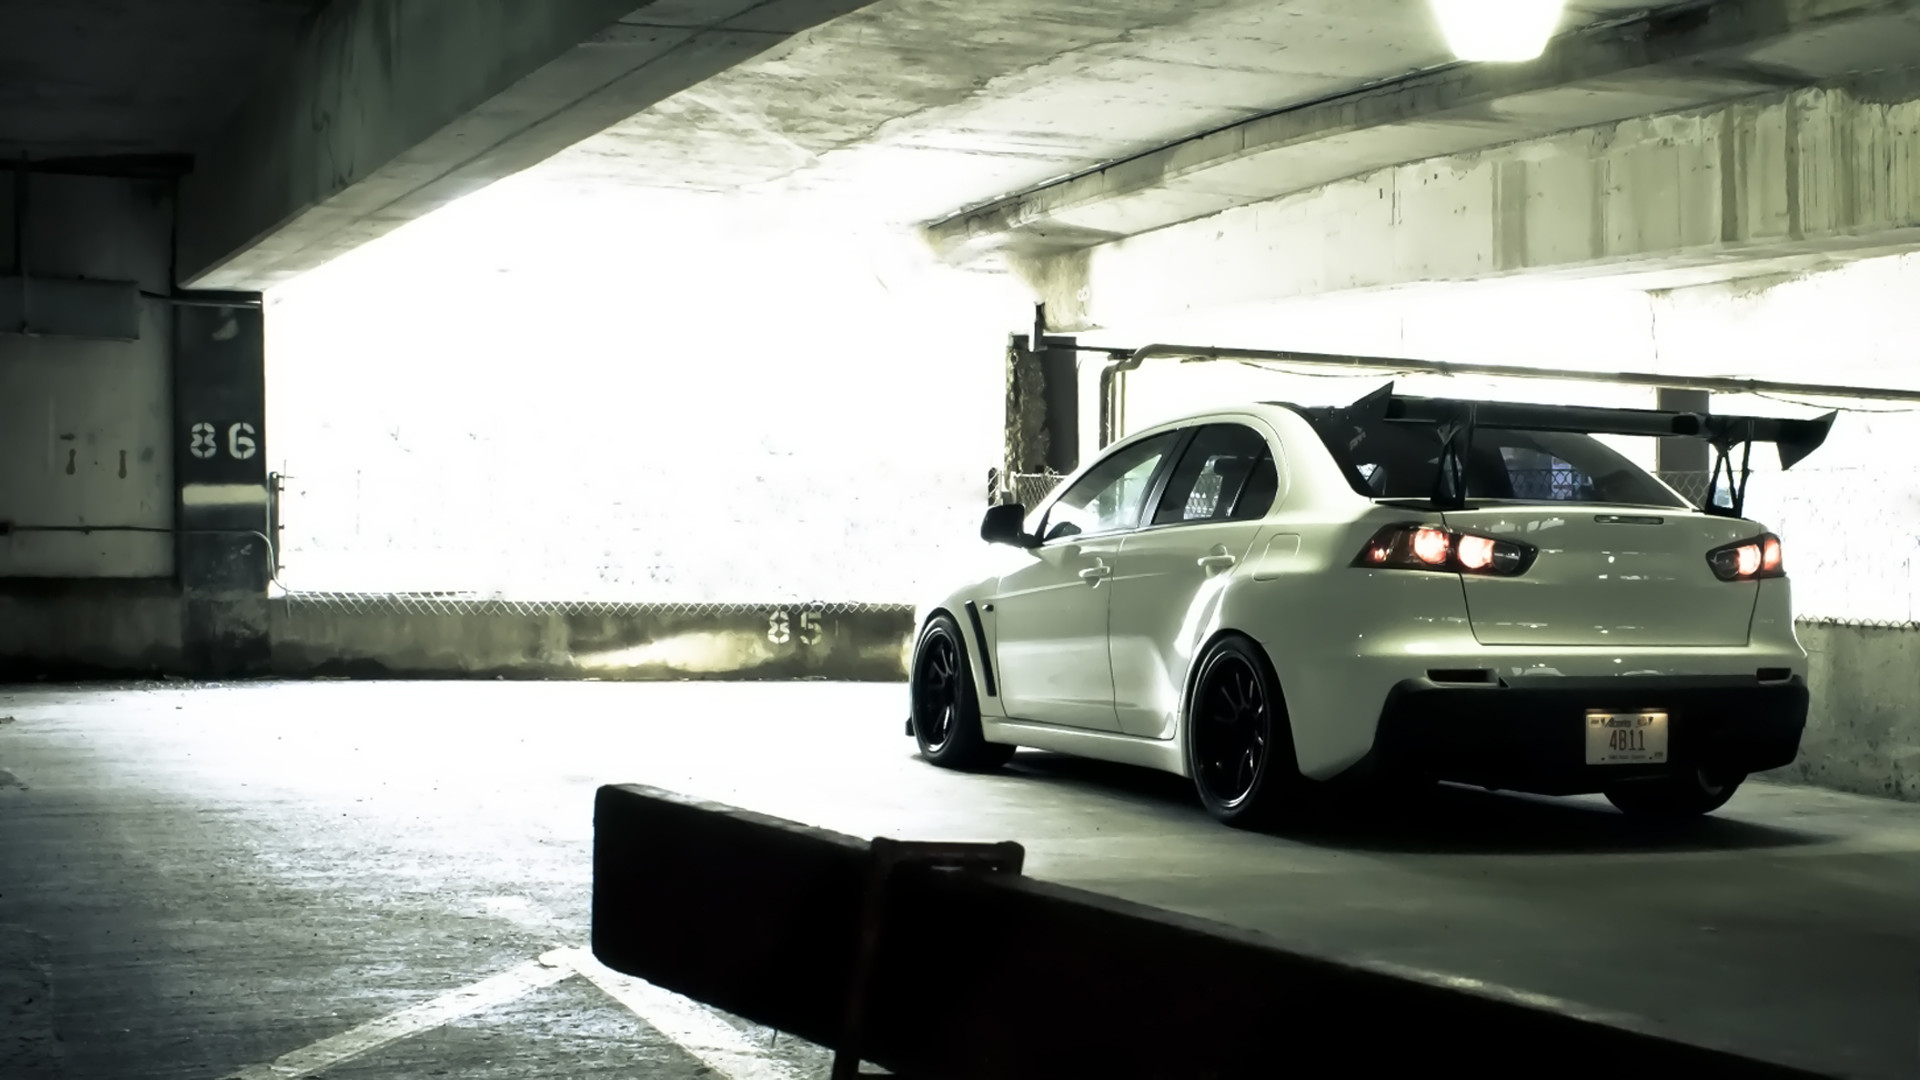 1920x1080 Lancer Evolution X Wallpaper Photos Wallpaper WallpaperLepi